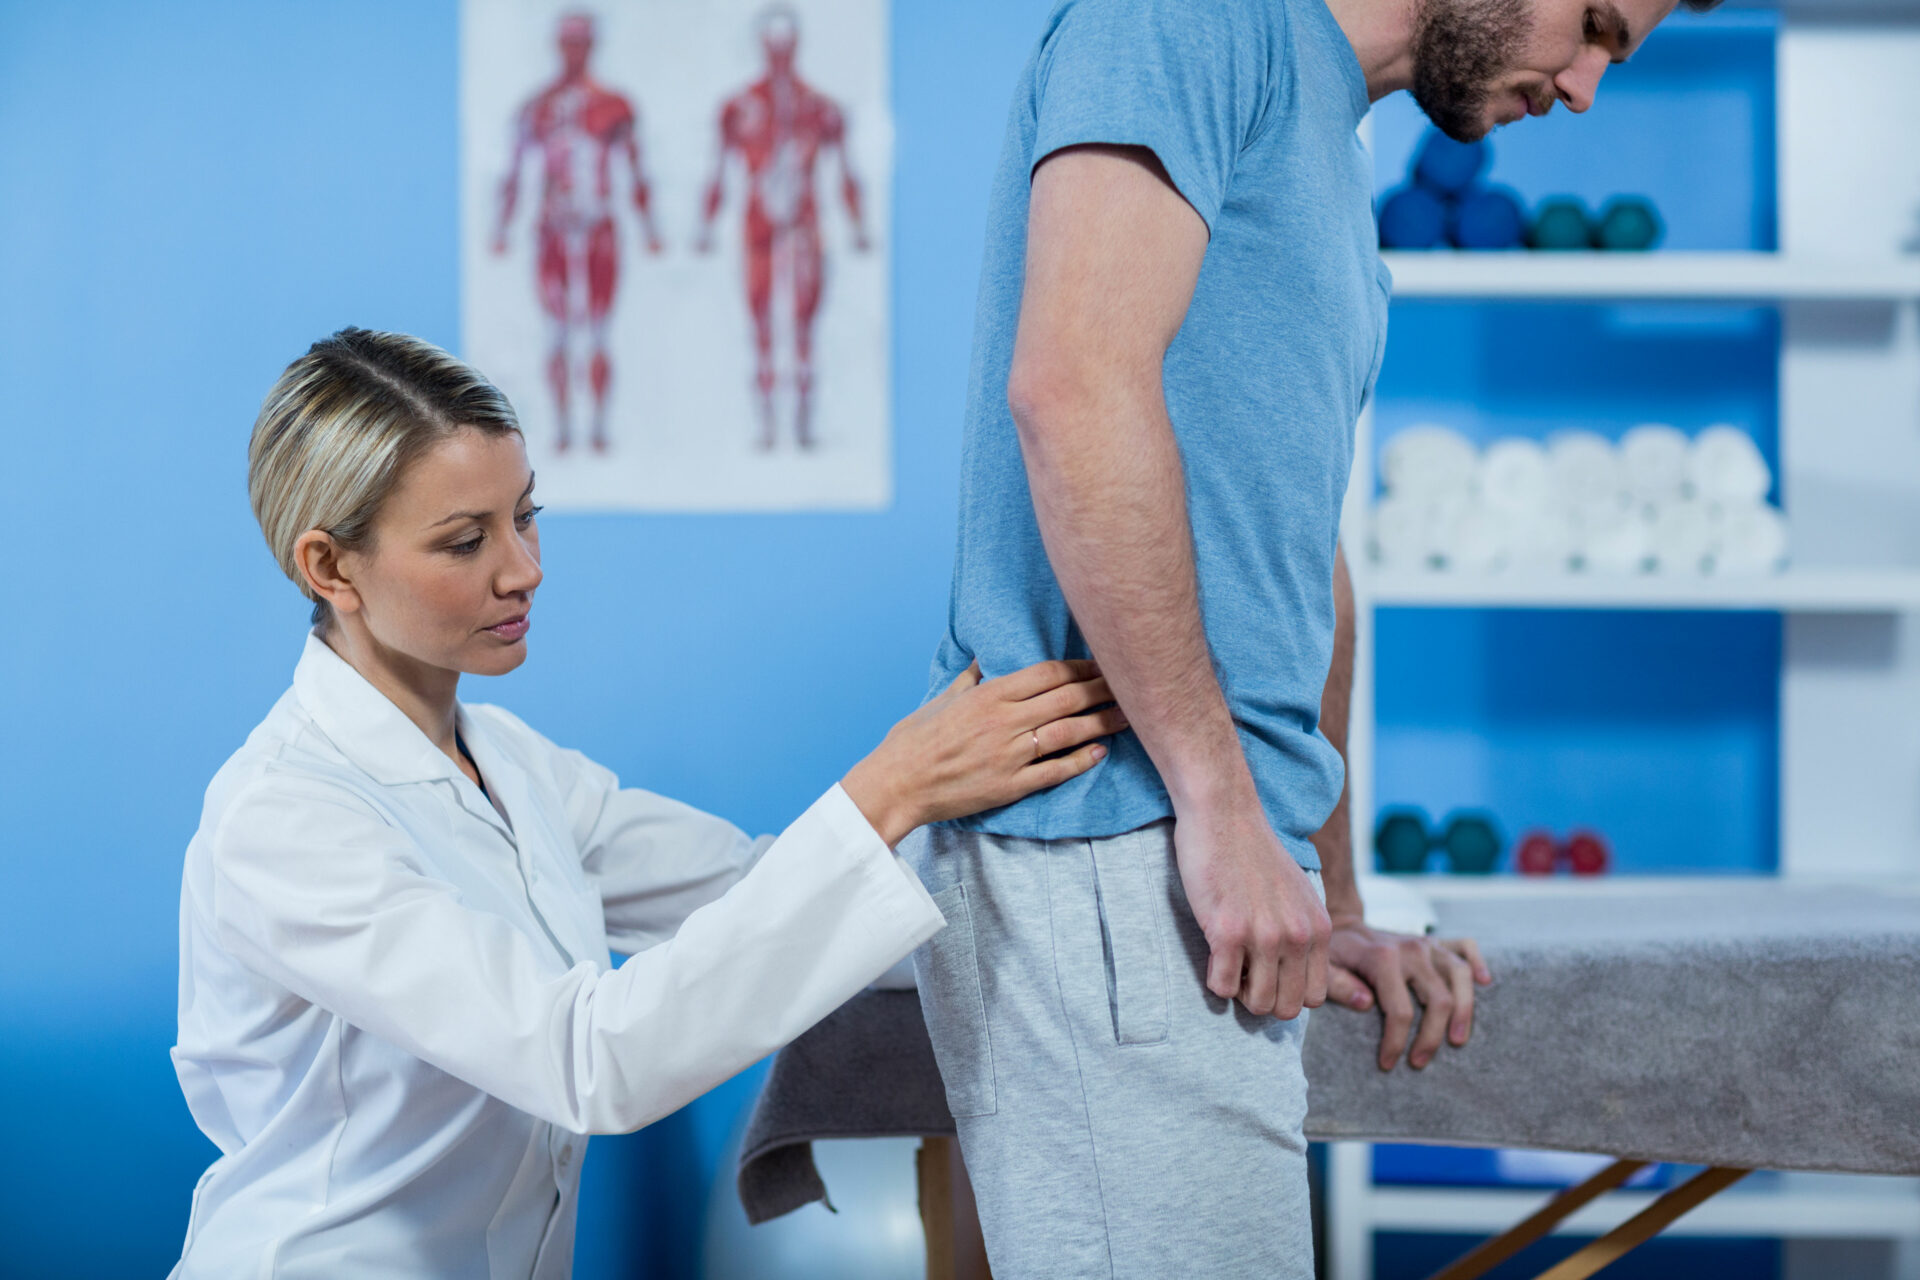 61653498 - physiotherapist examining mans back in clinic